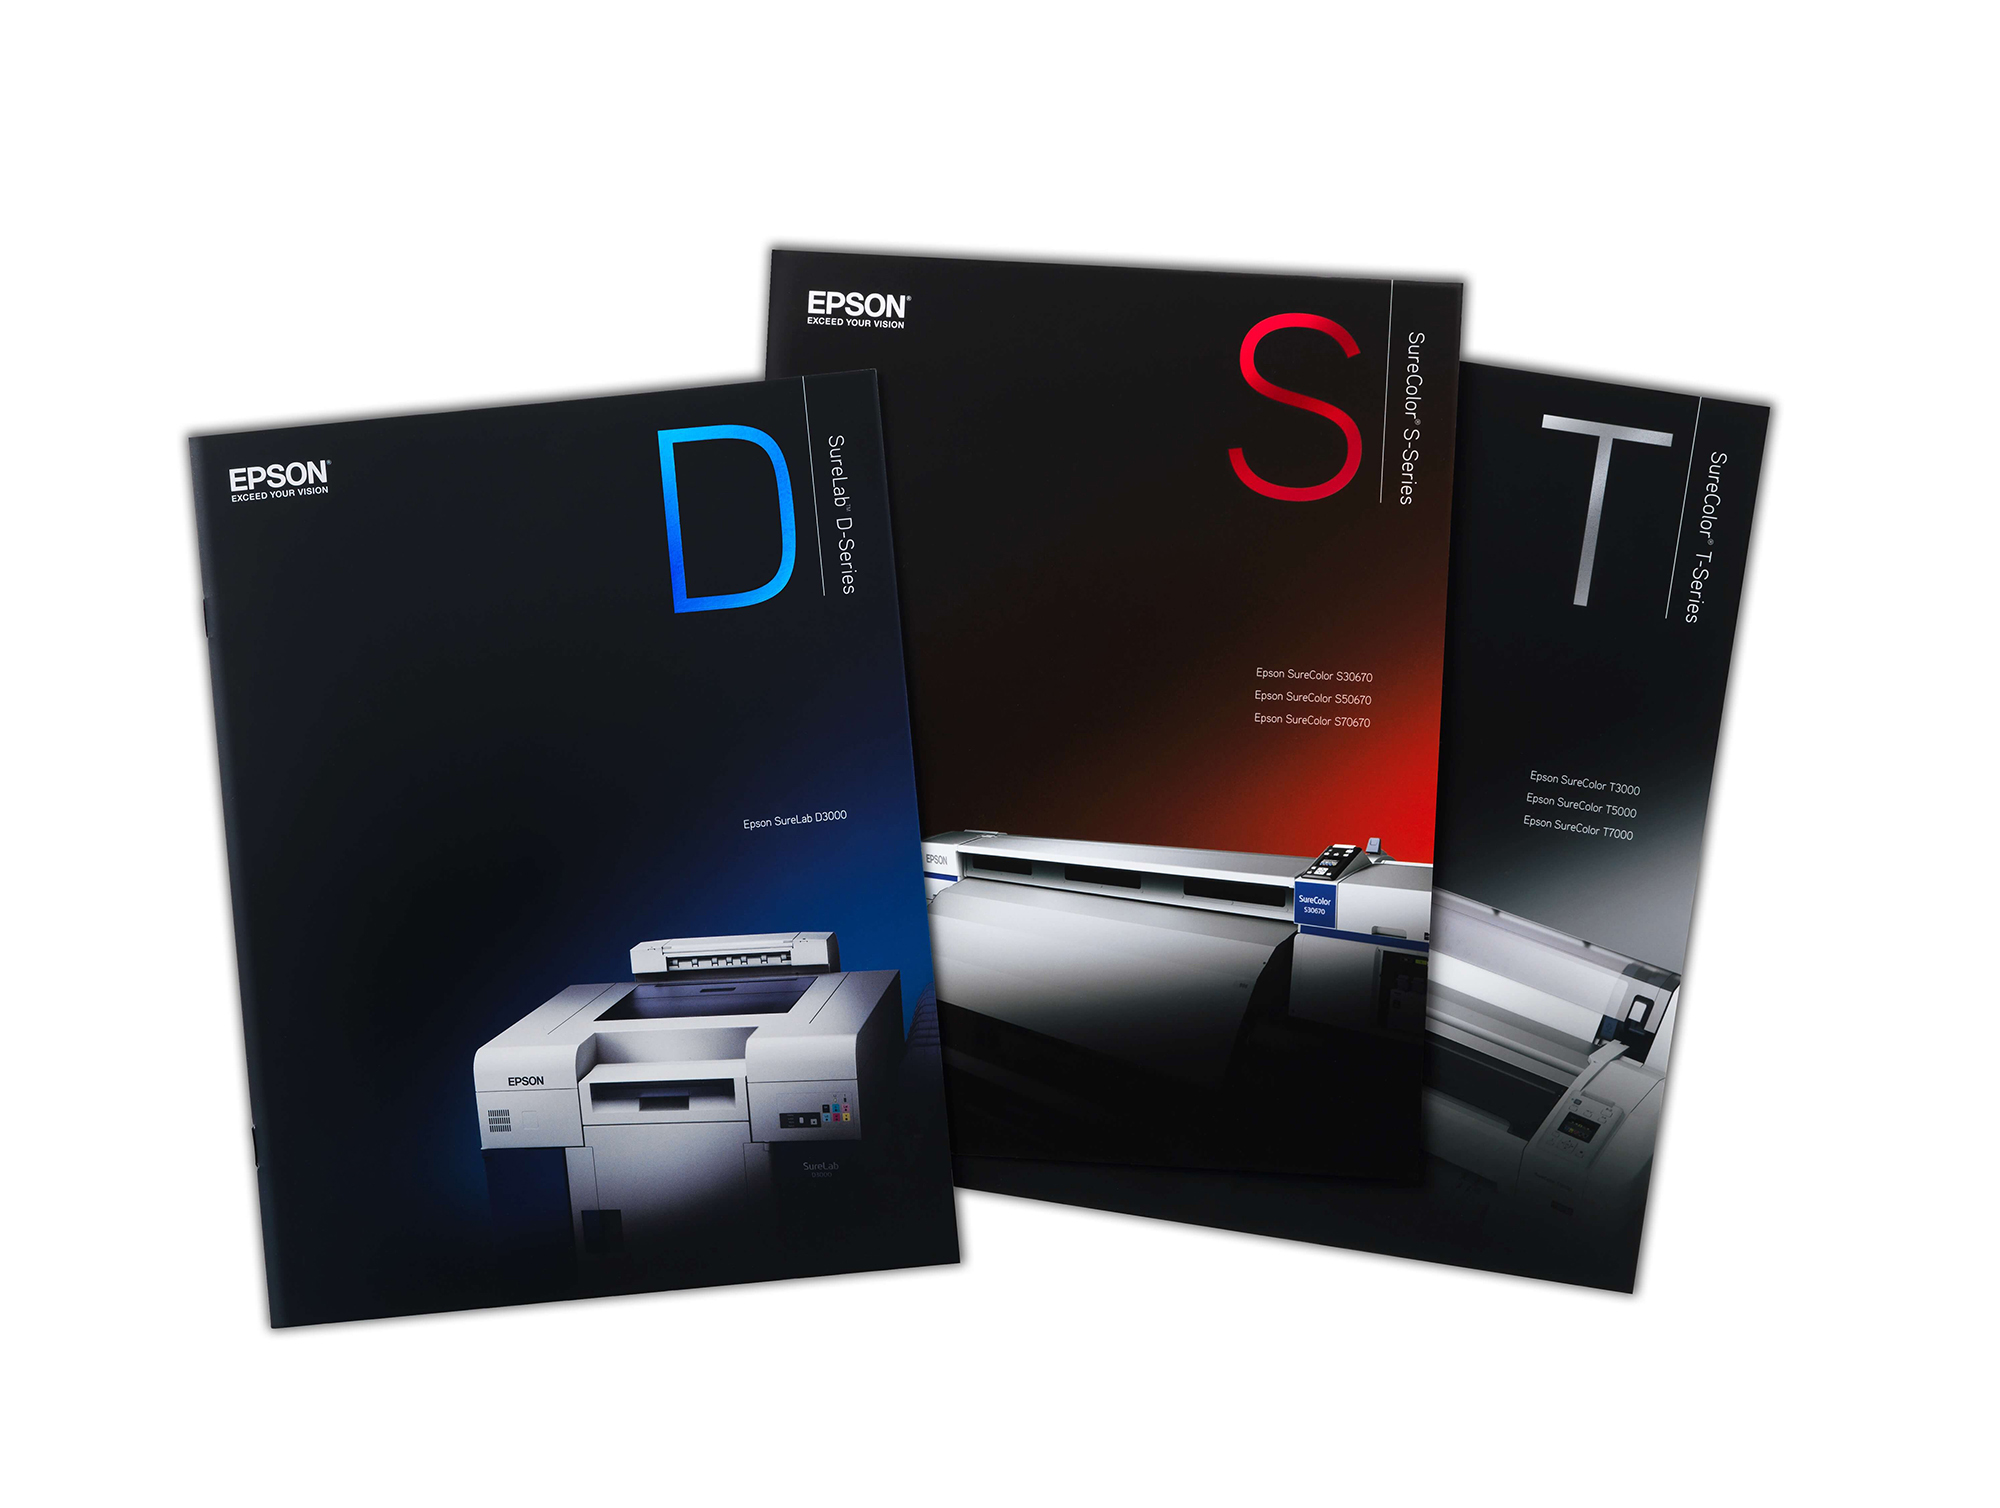 Epson Sure D S T covers